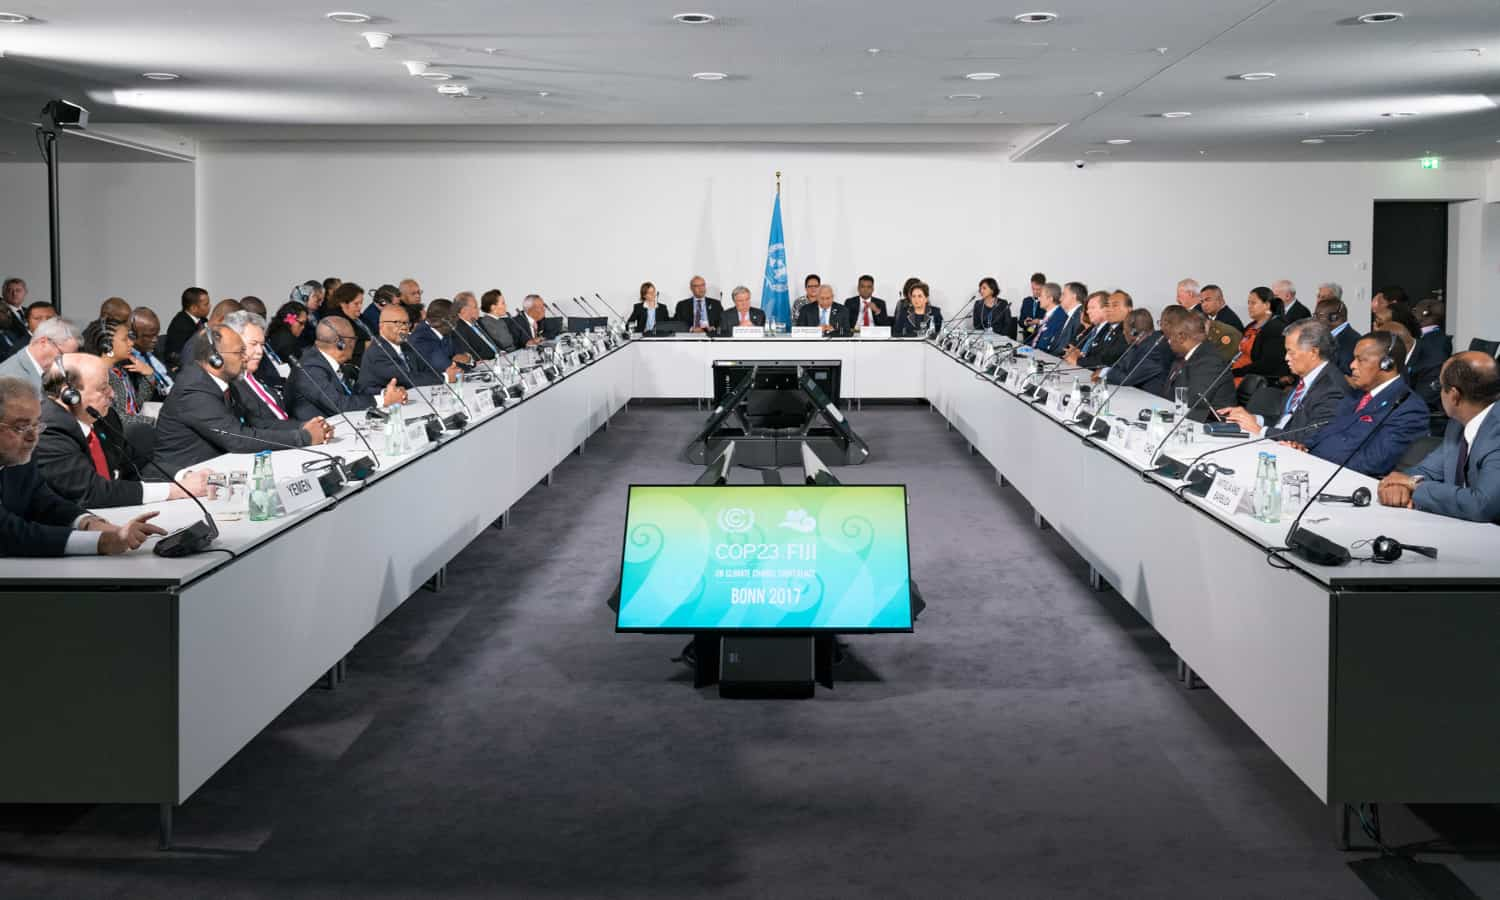 For the first time in the 25-year history of international climate negotiations, the 197 member countries of the United Nations Framework Convention on Climate Change (UNFCCC) have reached an agreement on agriculture. The milestone came near the close of the 23rd Conference of Parties (COP23) of the UNFCCC and formally establishes a process called the Koronivia Joint Work on Agriculture.